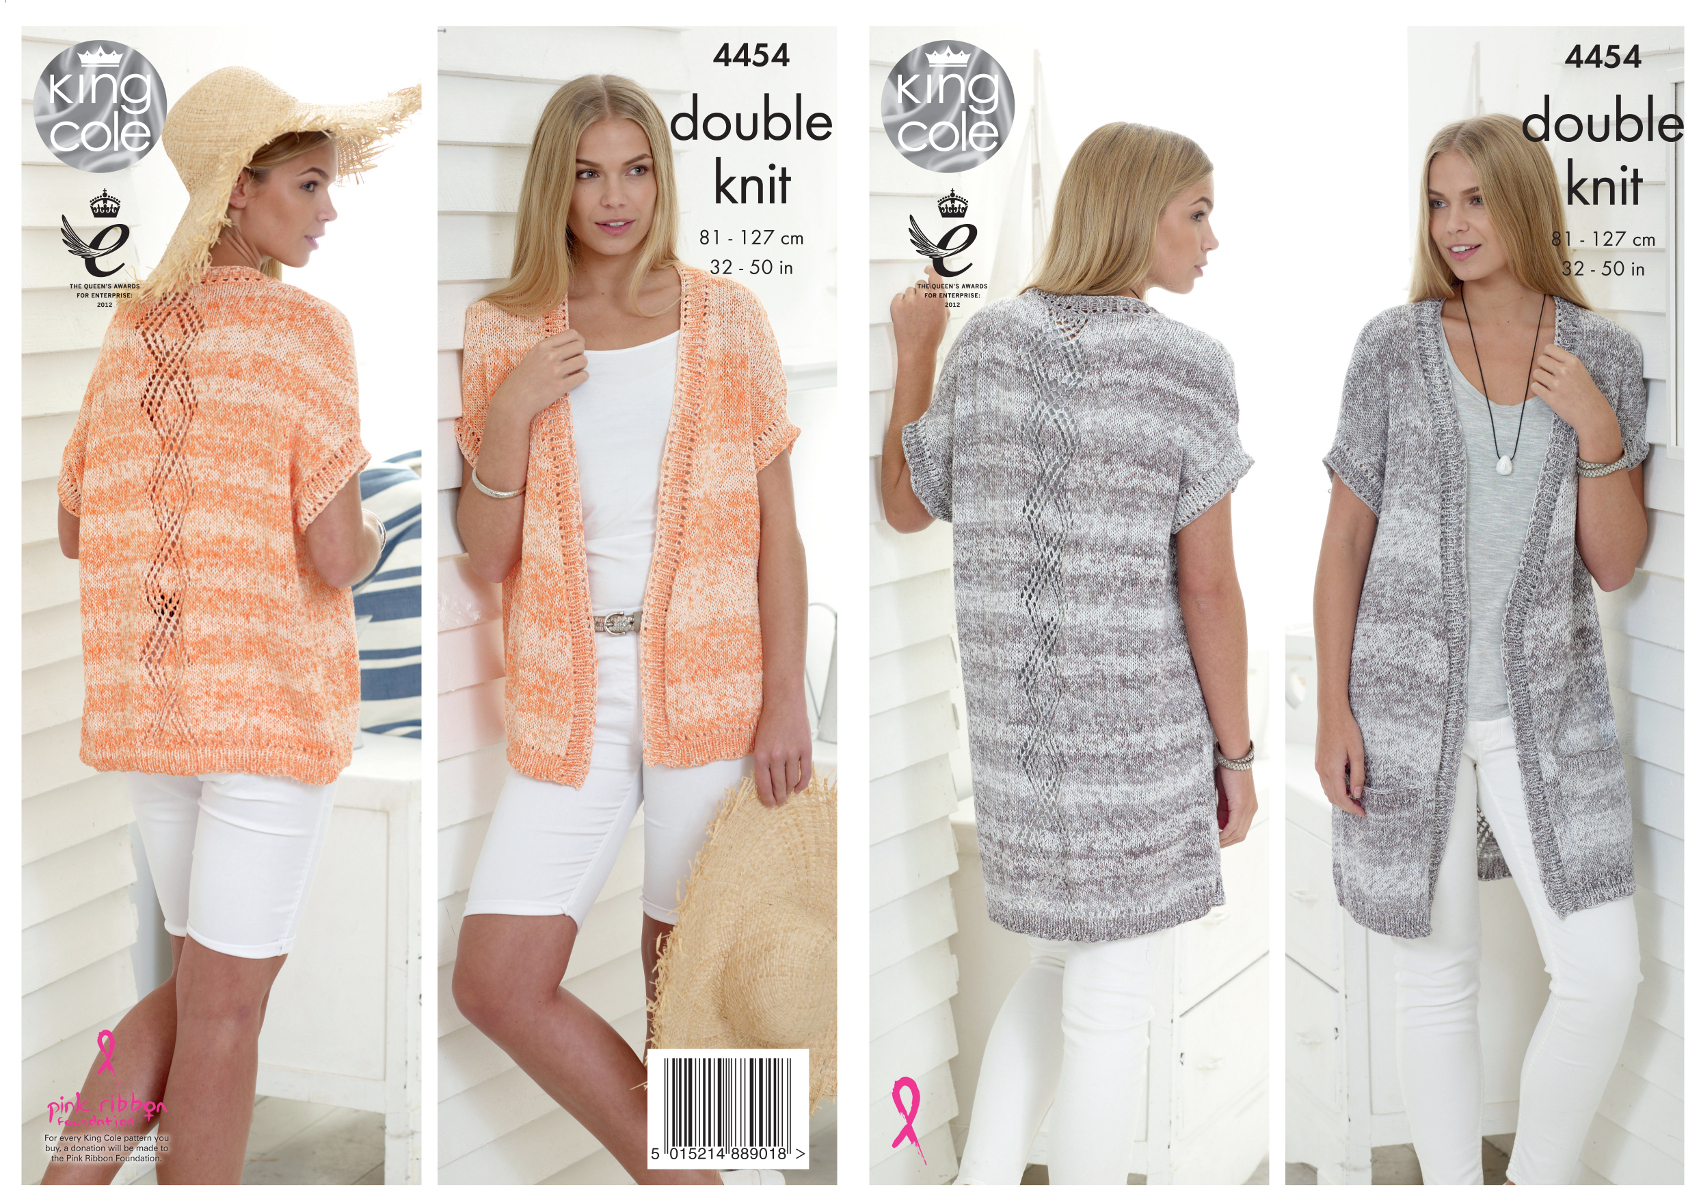 Knitting Patterns Ladies Waistcoats : King Cole Ladies Double Knitting Pattern Lace Effect Waistcoats Vogue DK 4454...